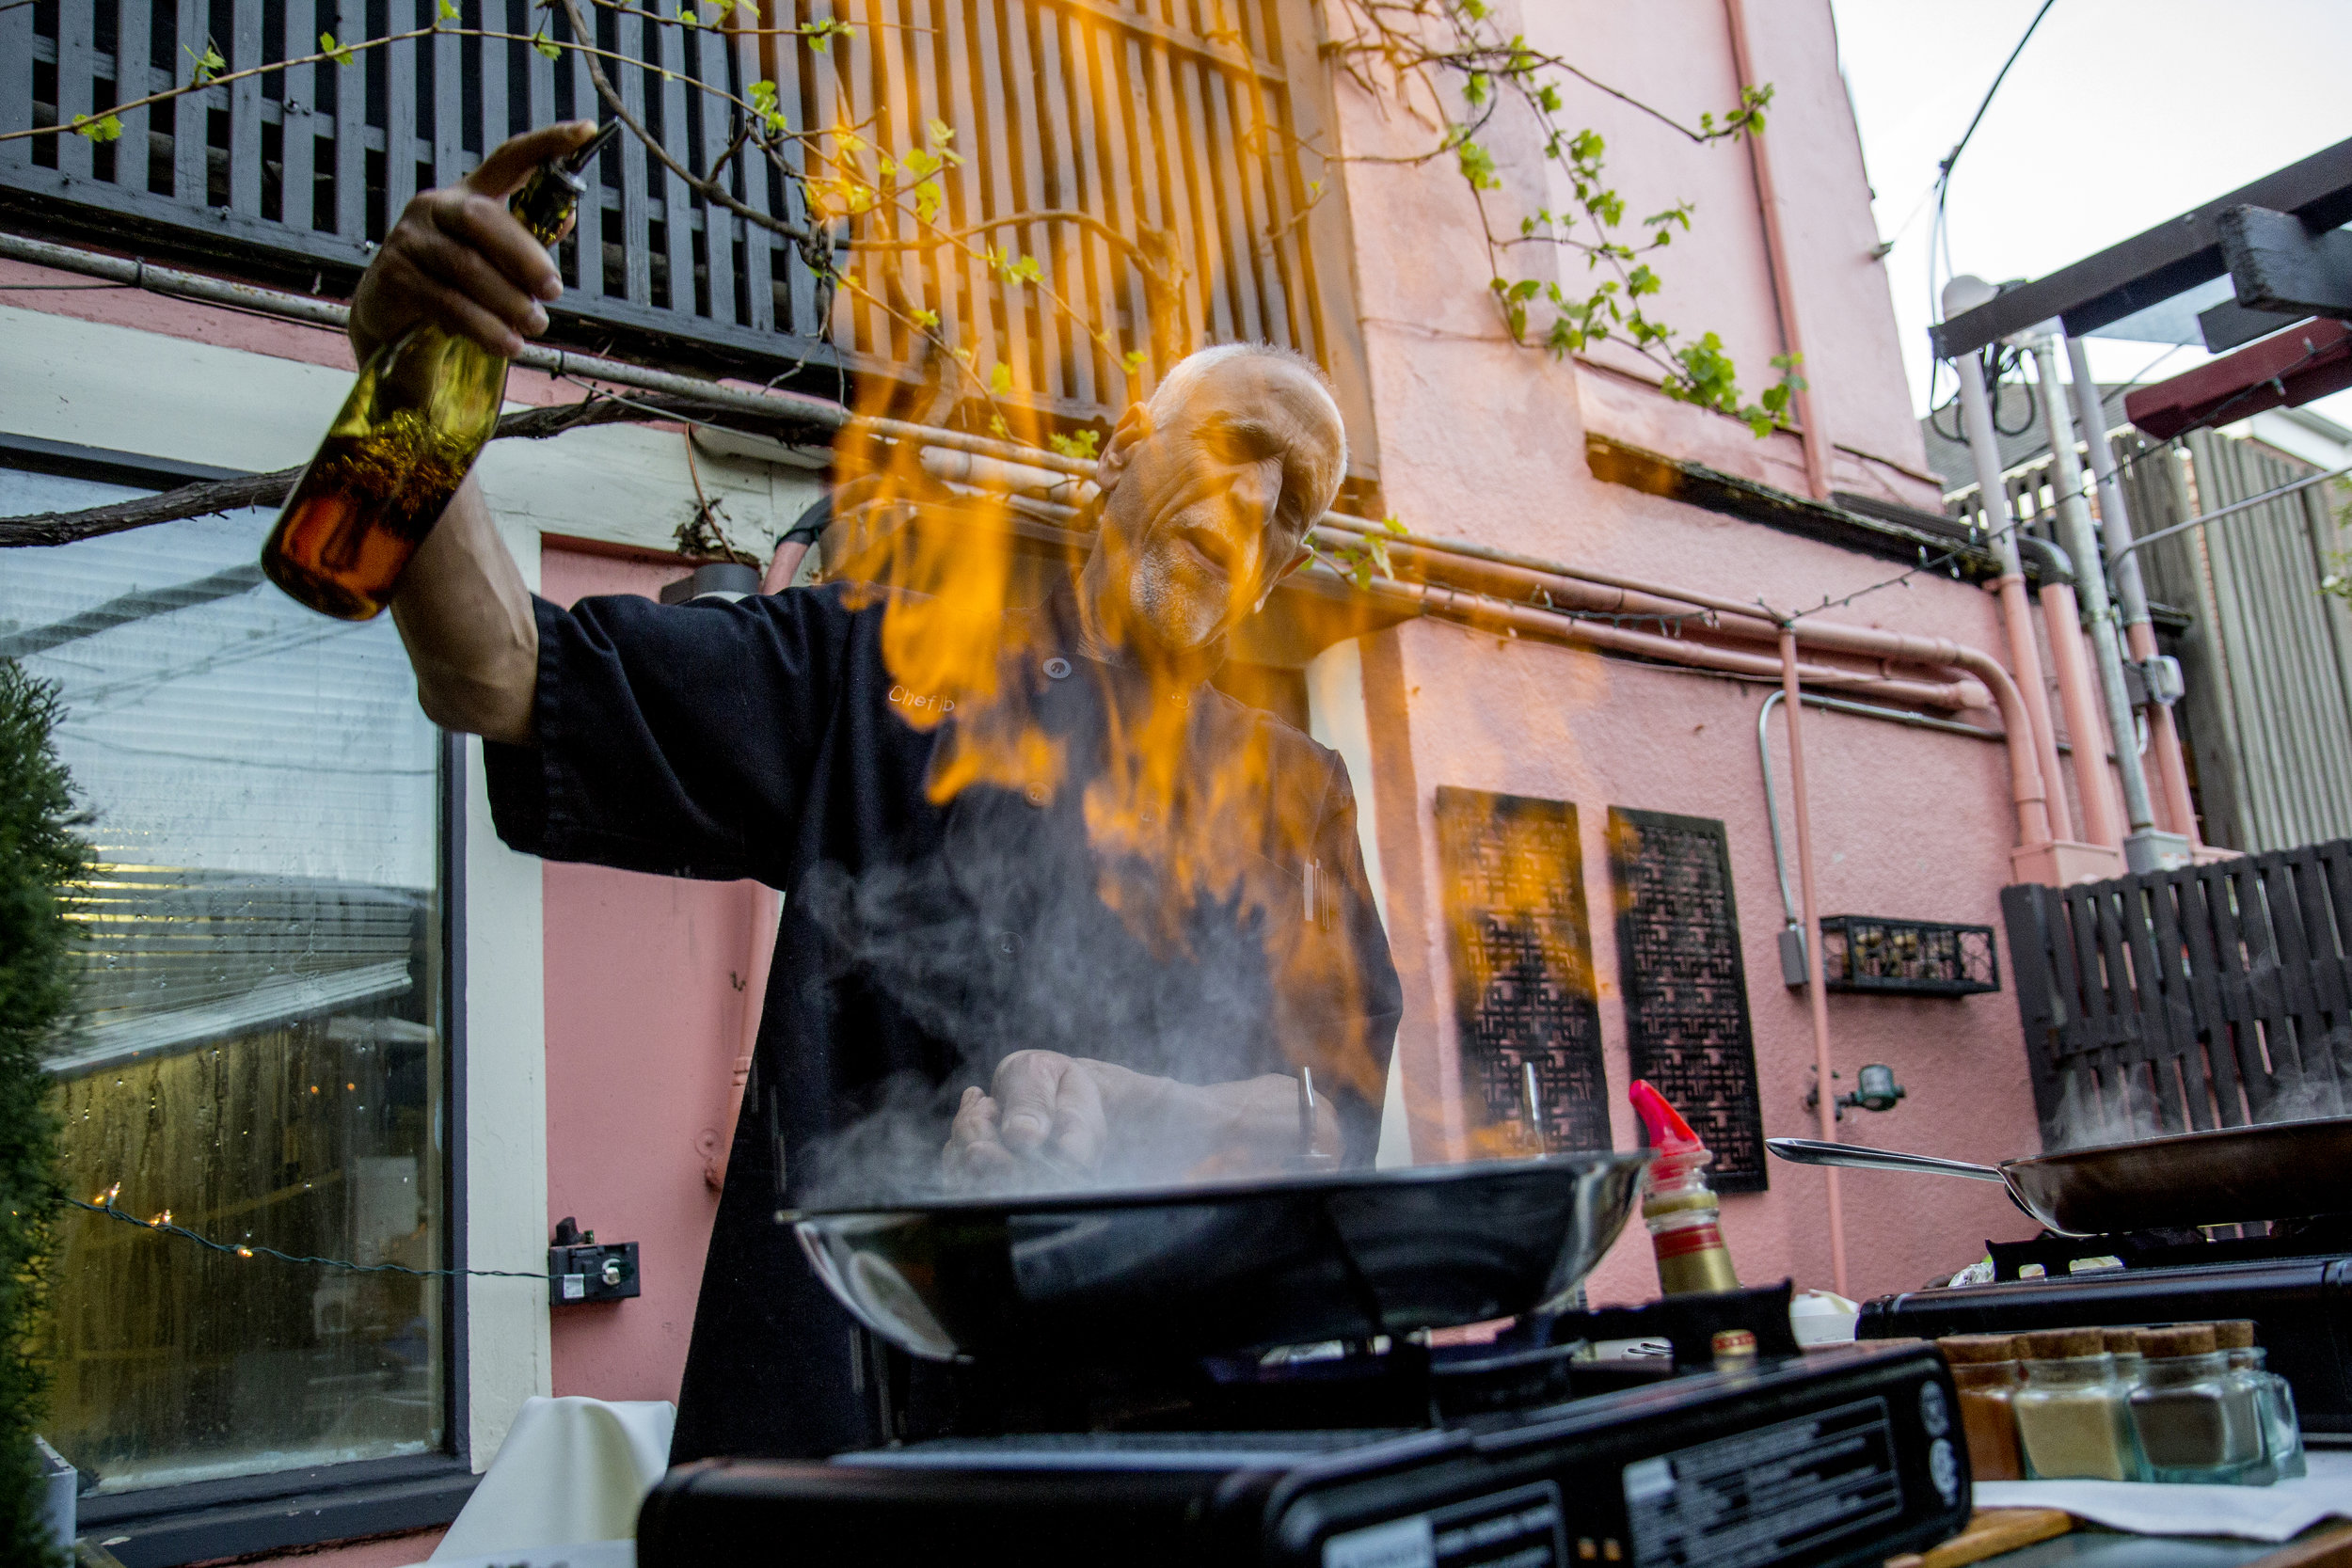 "Flames roar up over the face of head chef and owner of Café Soriah, Ibrahim Hamide, as he prepares steak diane for his customers on the back patio of Café Soriah. Hamide was born in Bethlehem in 1950 and came to Eugene to attend the University of Oregon in 1969. He quickly fell in love with the Eugene community after noticing people smiled at him, that smiling captured his heart. After 9/11, Hamide became ""the defacto spokesperson for Palestinians"" in the Eugene community."